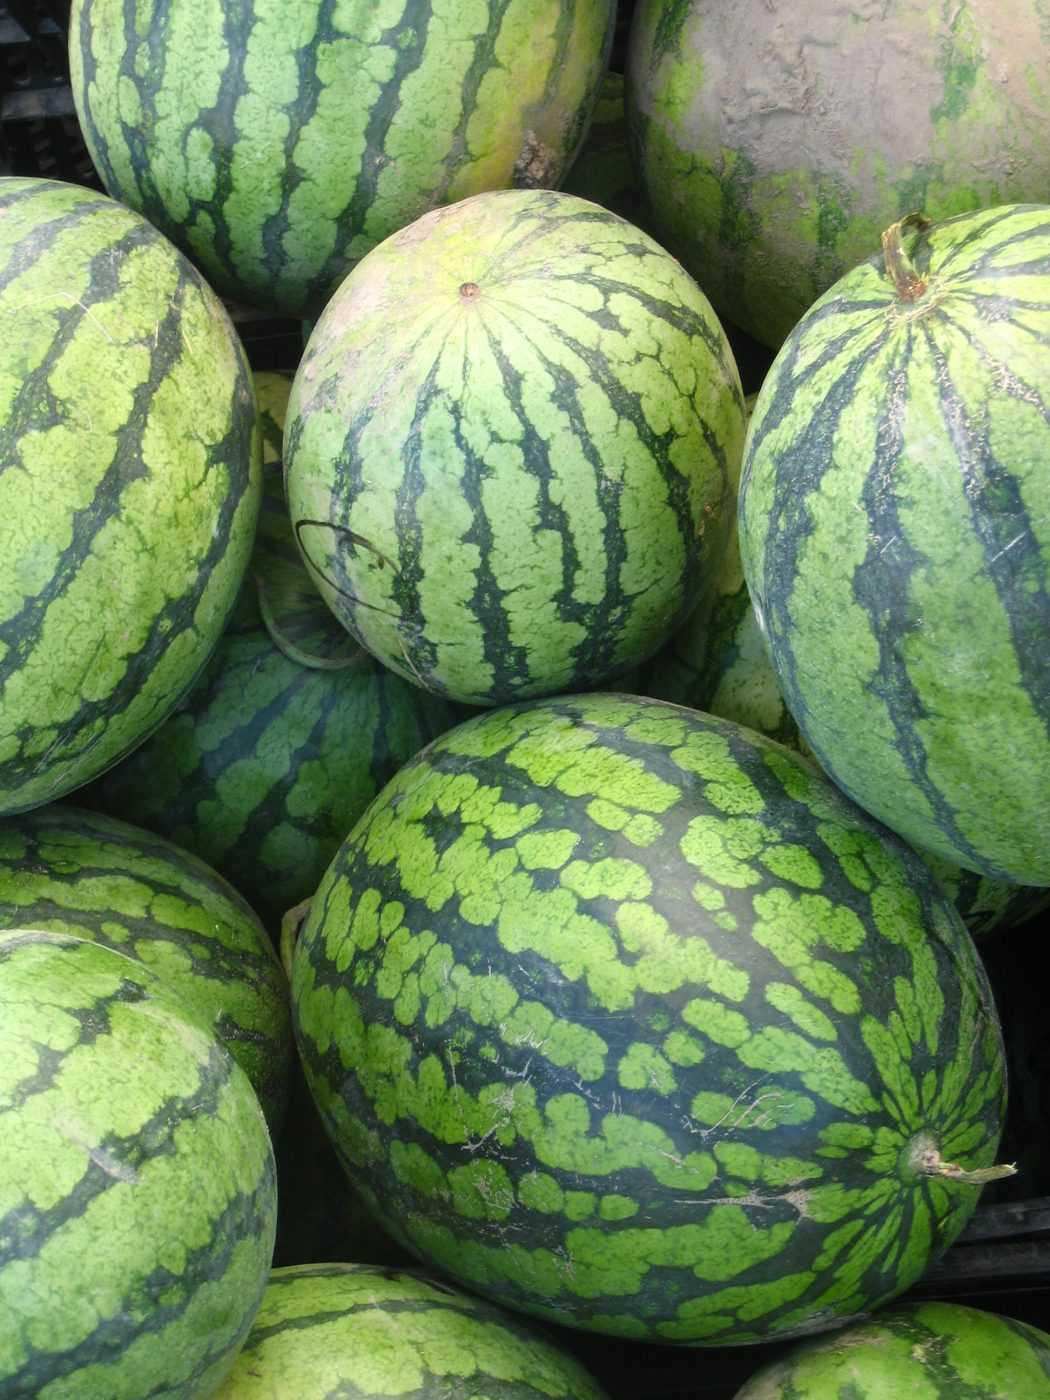 watermelon-watermelons-for-sale-(credit: alistair williamson)